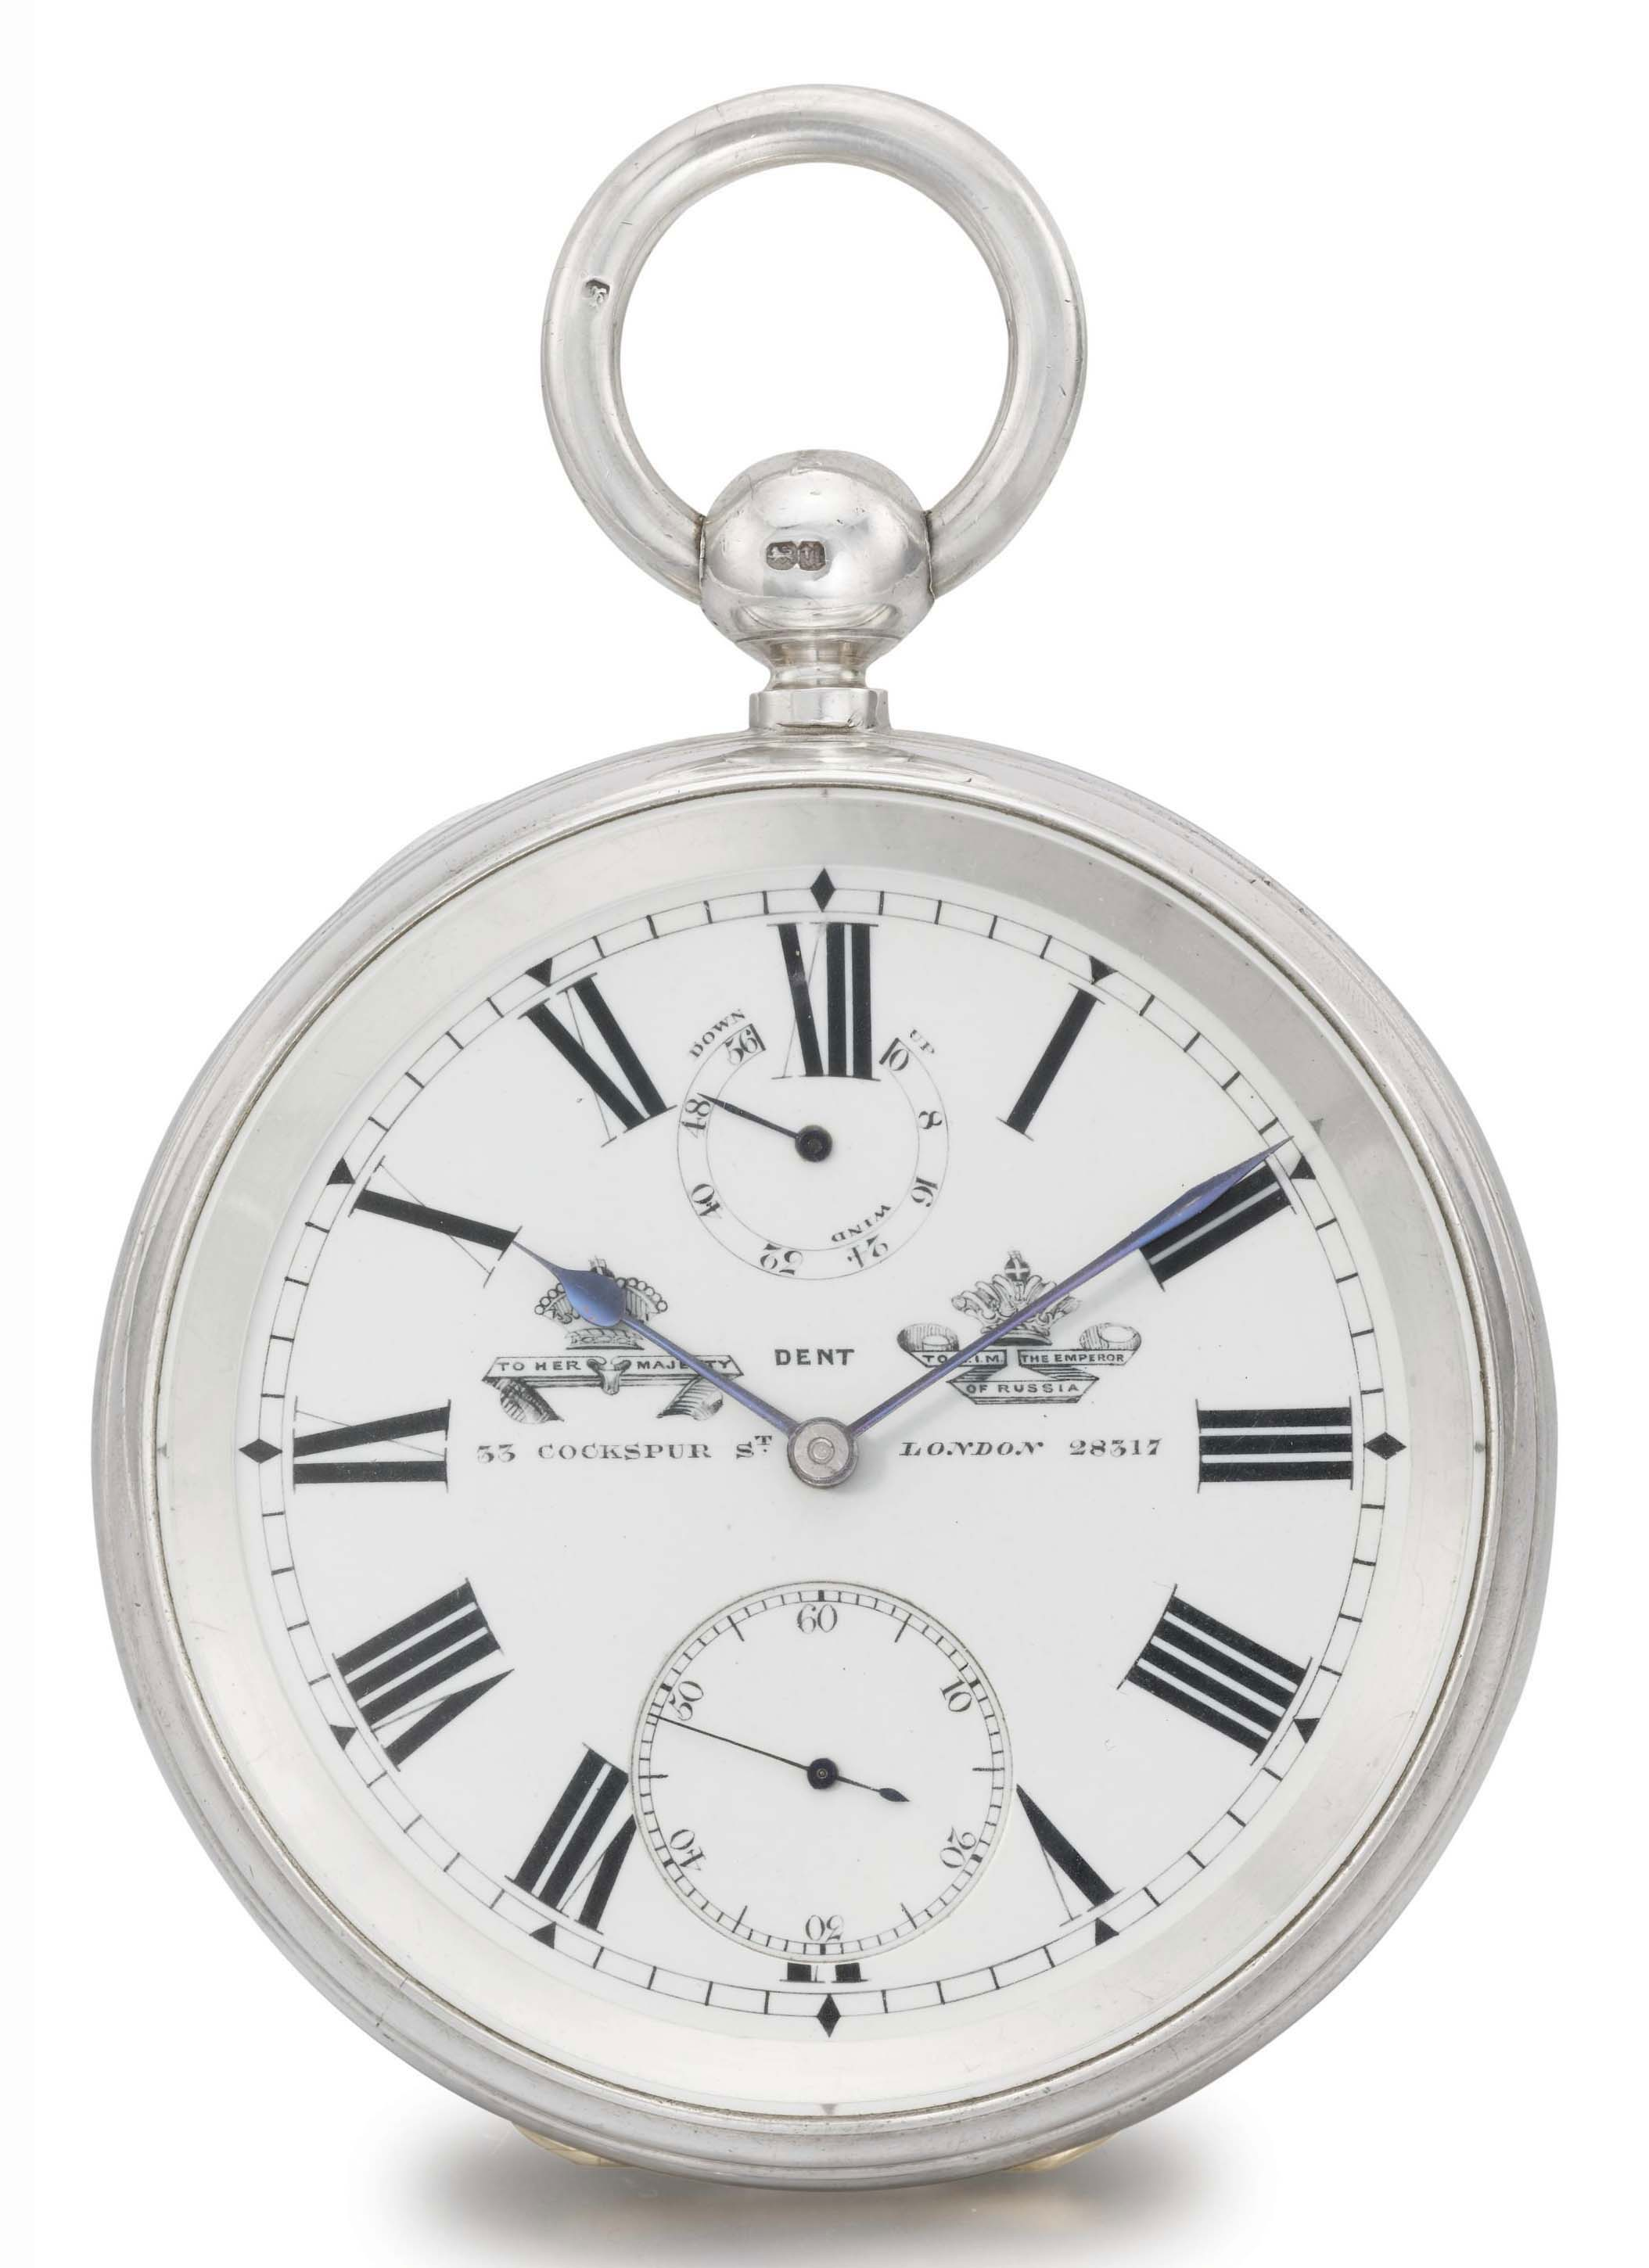 Dent. A fine and rare silver two-day openface pocket chronometer watch with power reserve